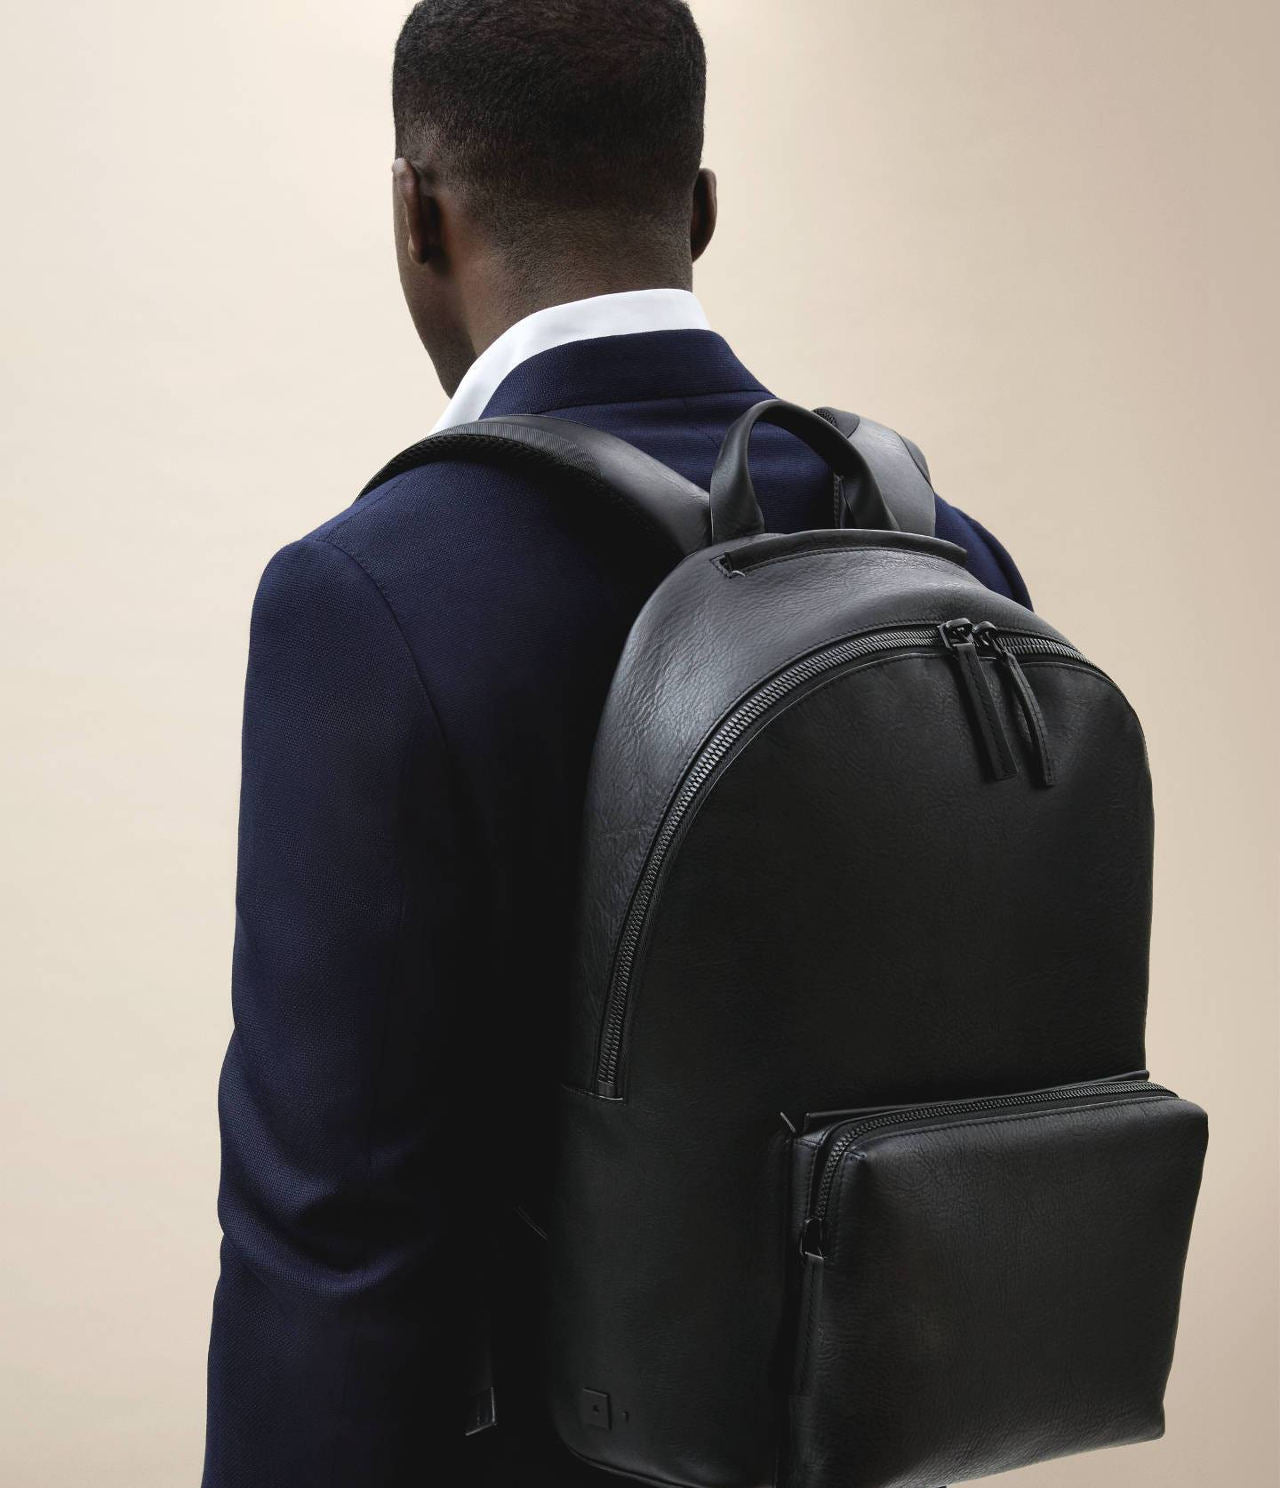 Navy suit and black leather backpack